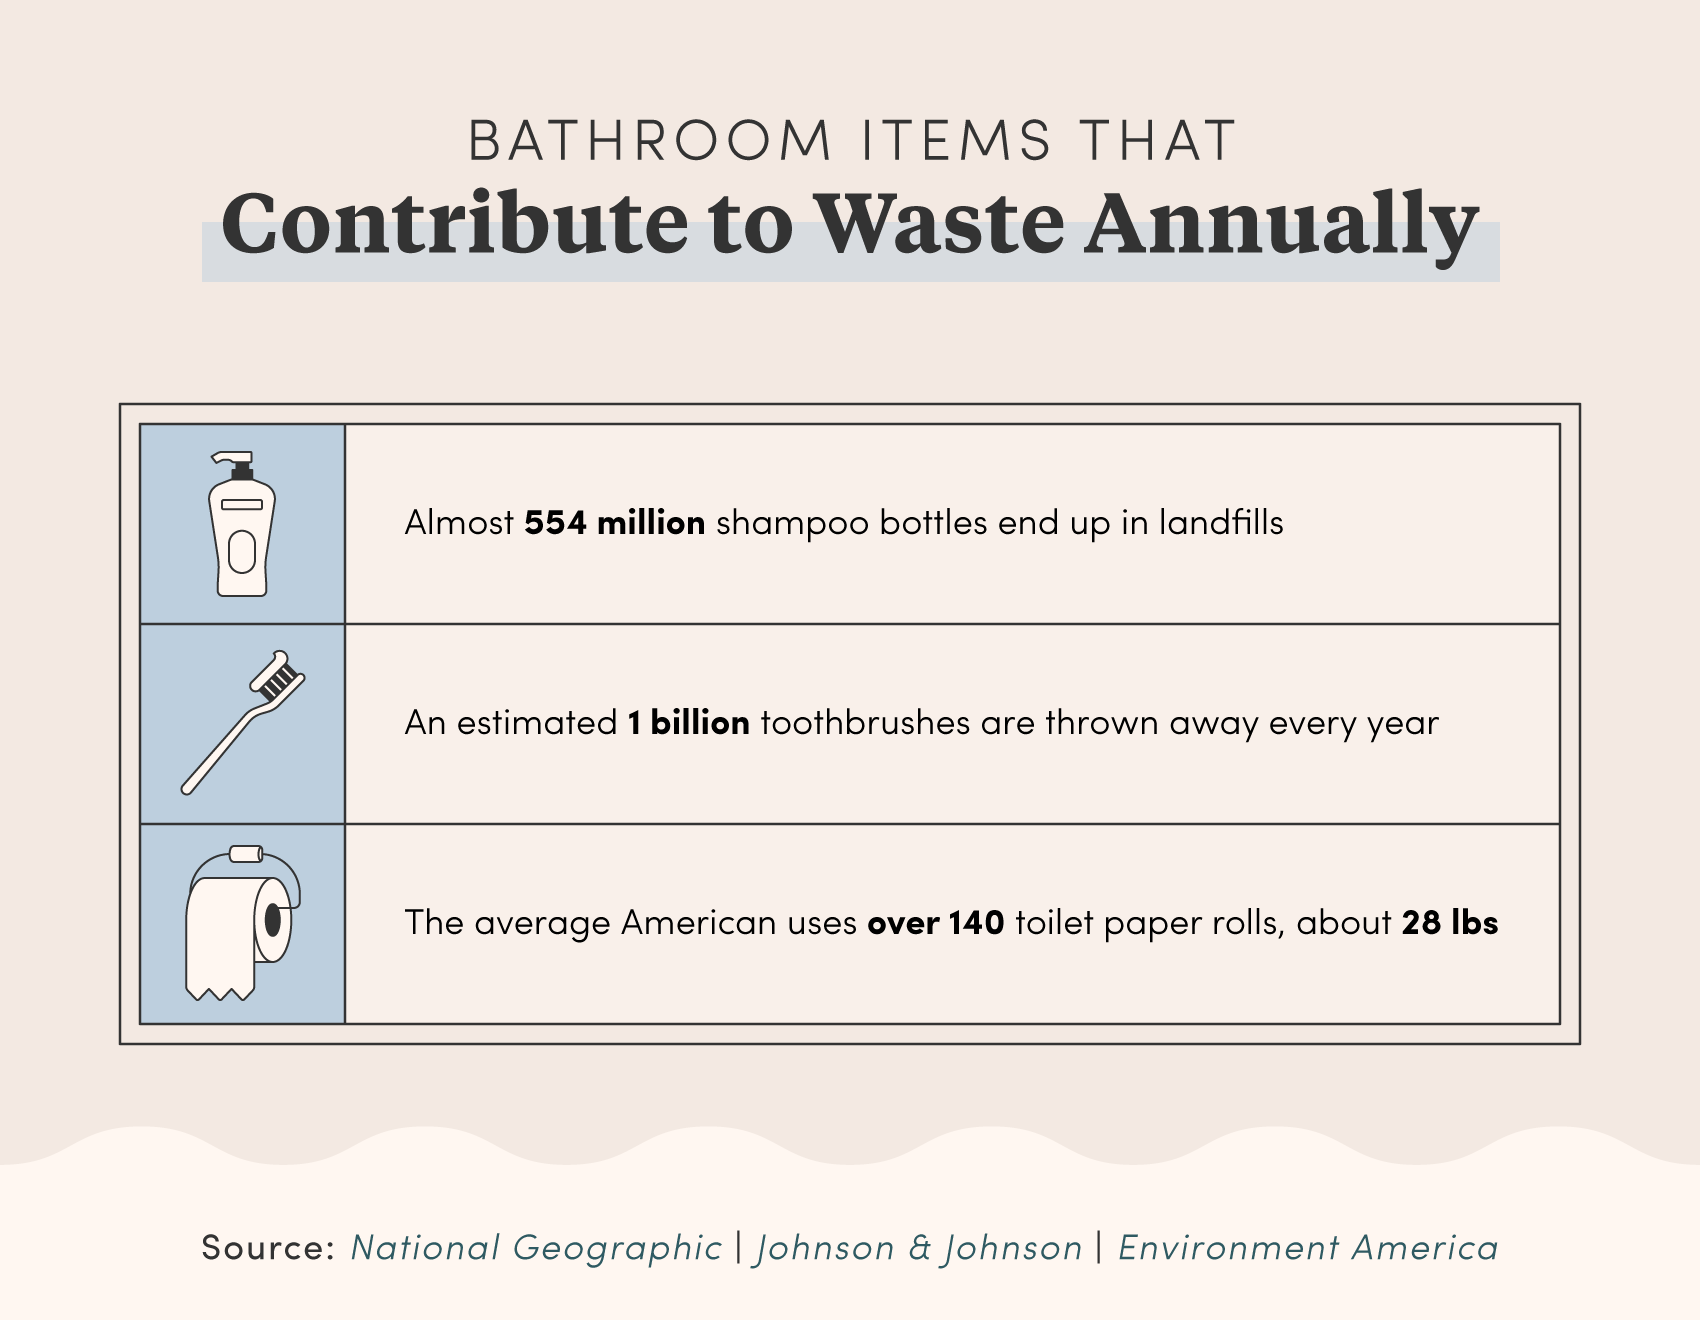 Bathroom Items That Contribute to Waste Annually